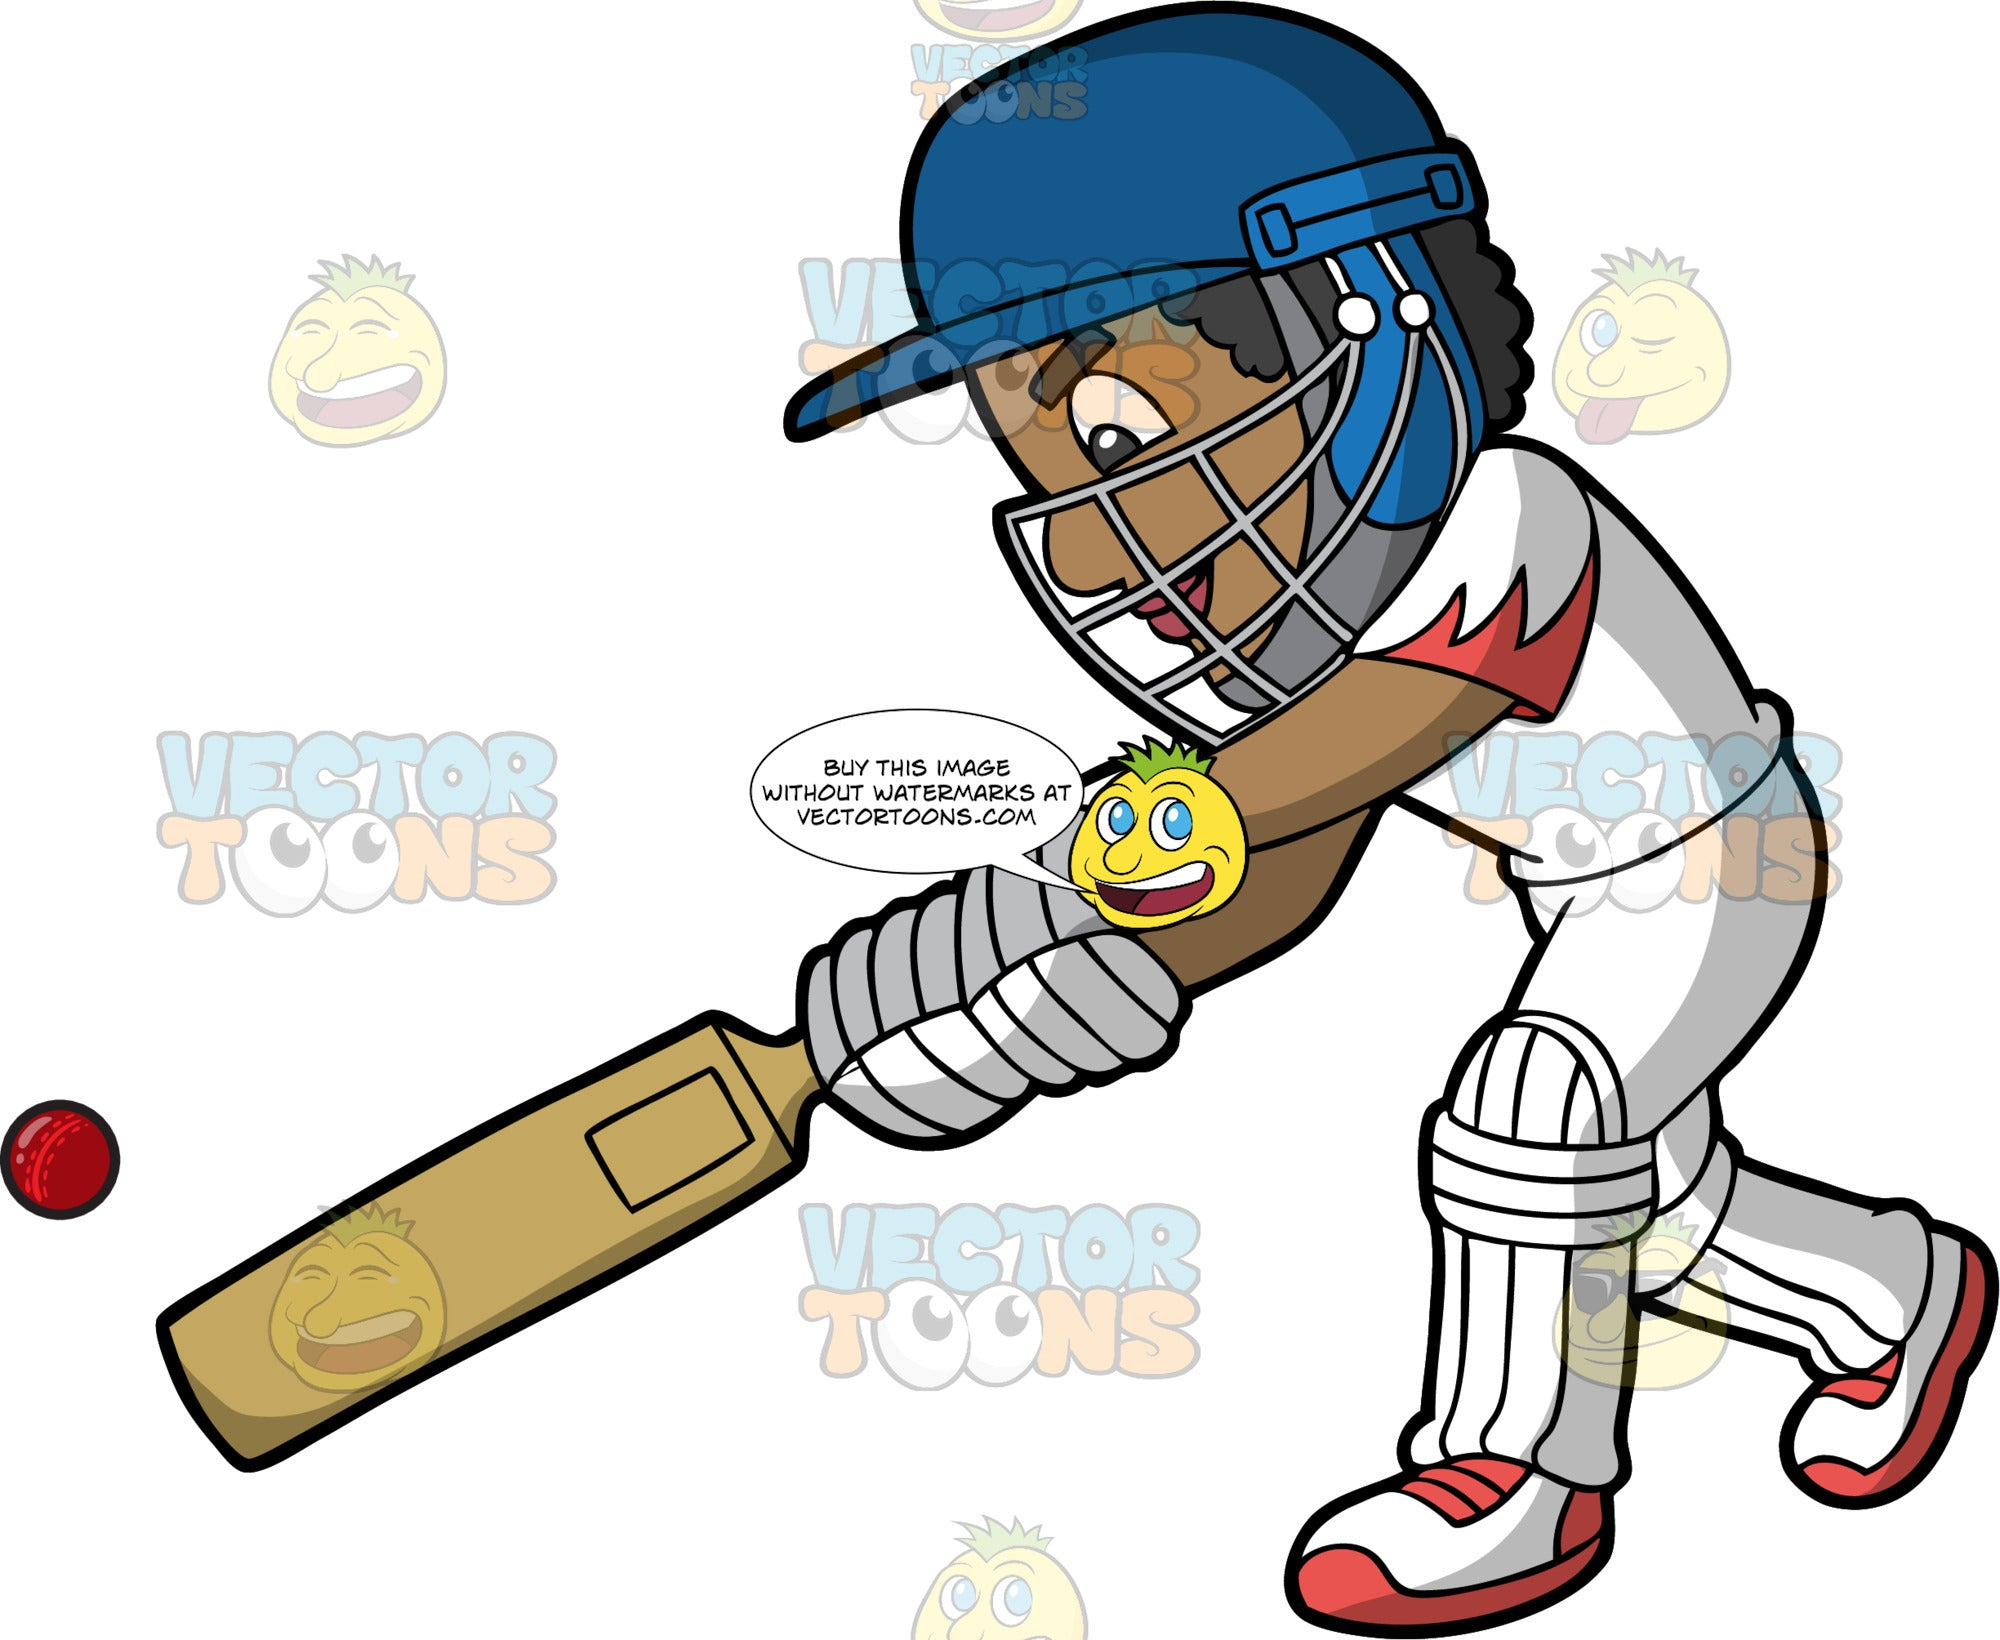 A Black Cricket Player Concentrates As He Hits A Cricket Ball. A black man wearing a blue safety helmet, white cricket uniform, white with red shoes and white shin and knee pads, lunges forward and hits a cricket ball with his bat